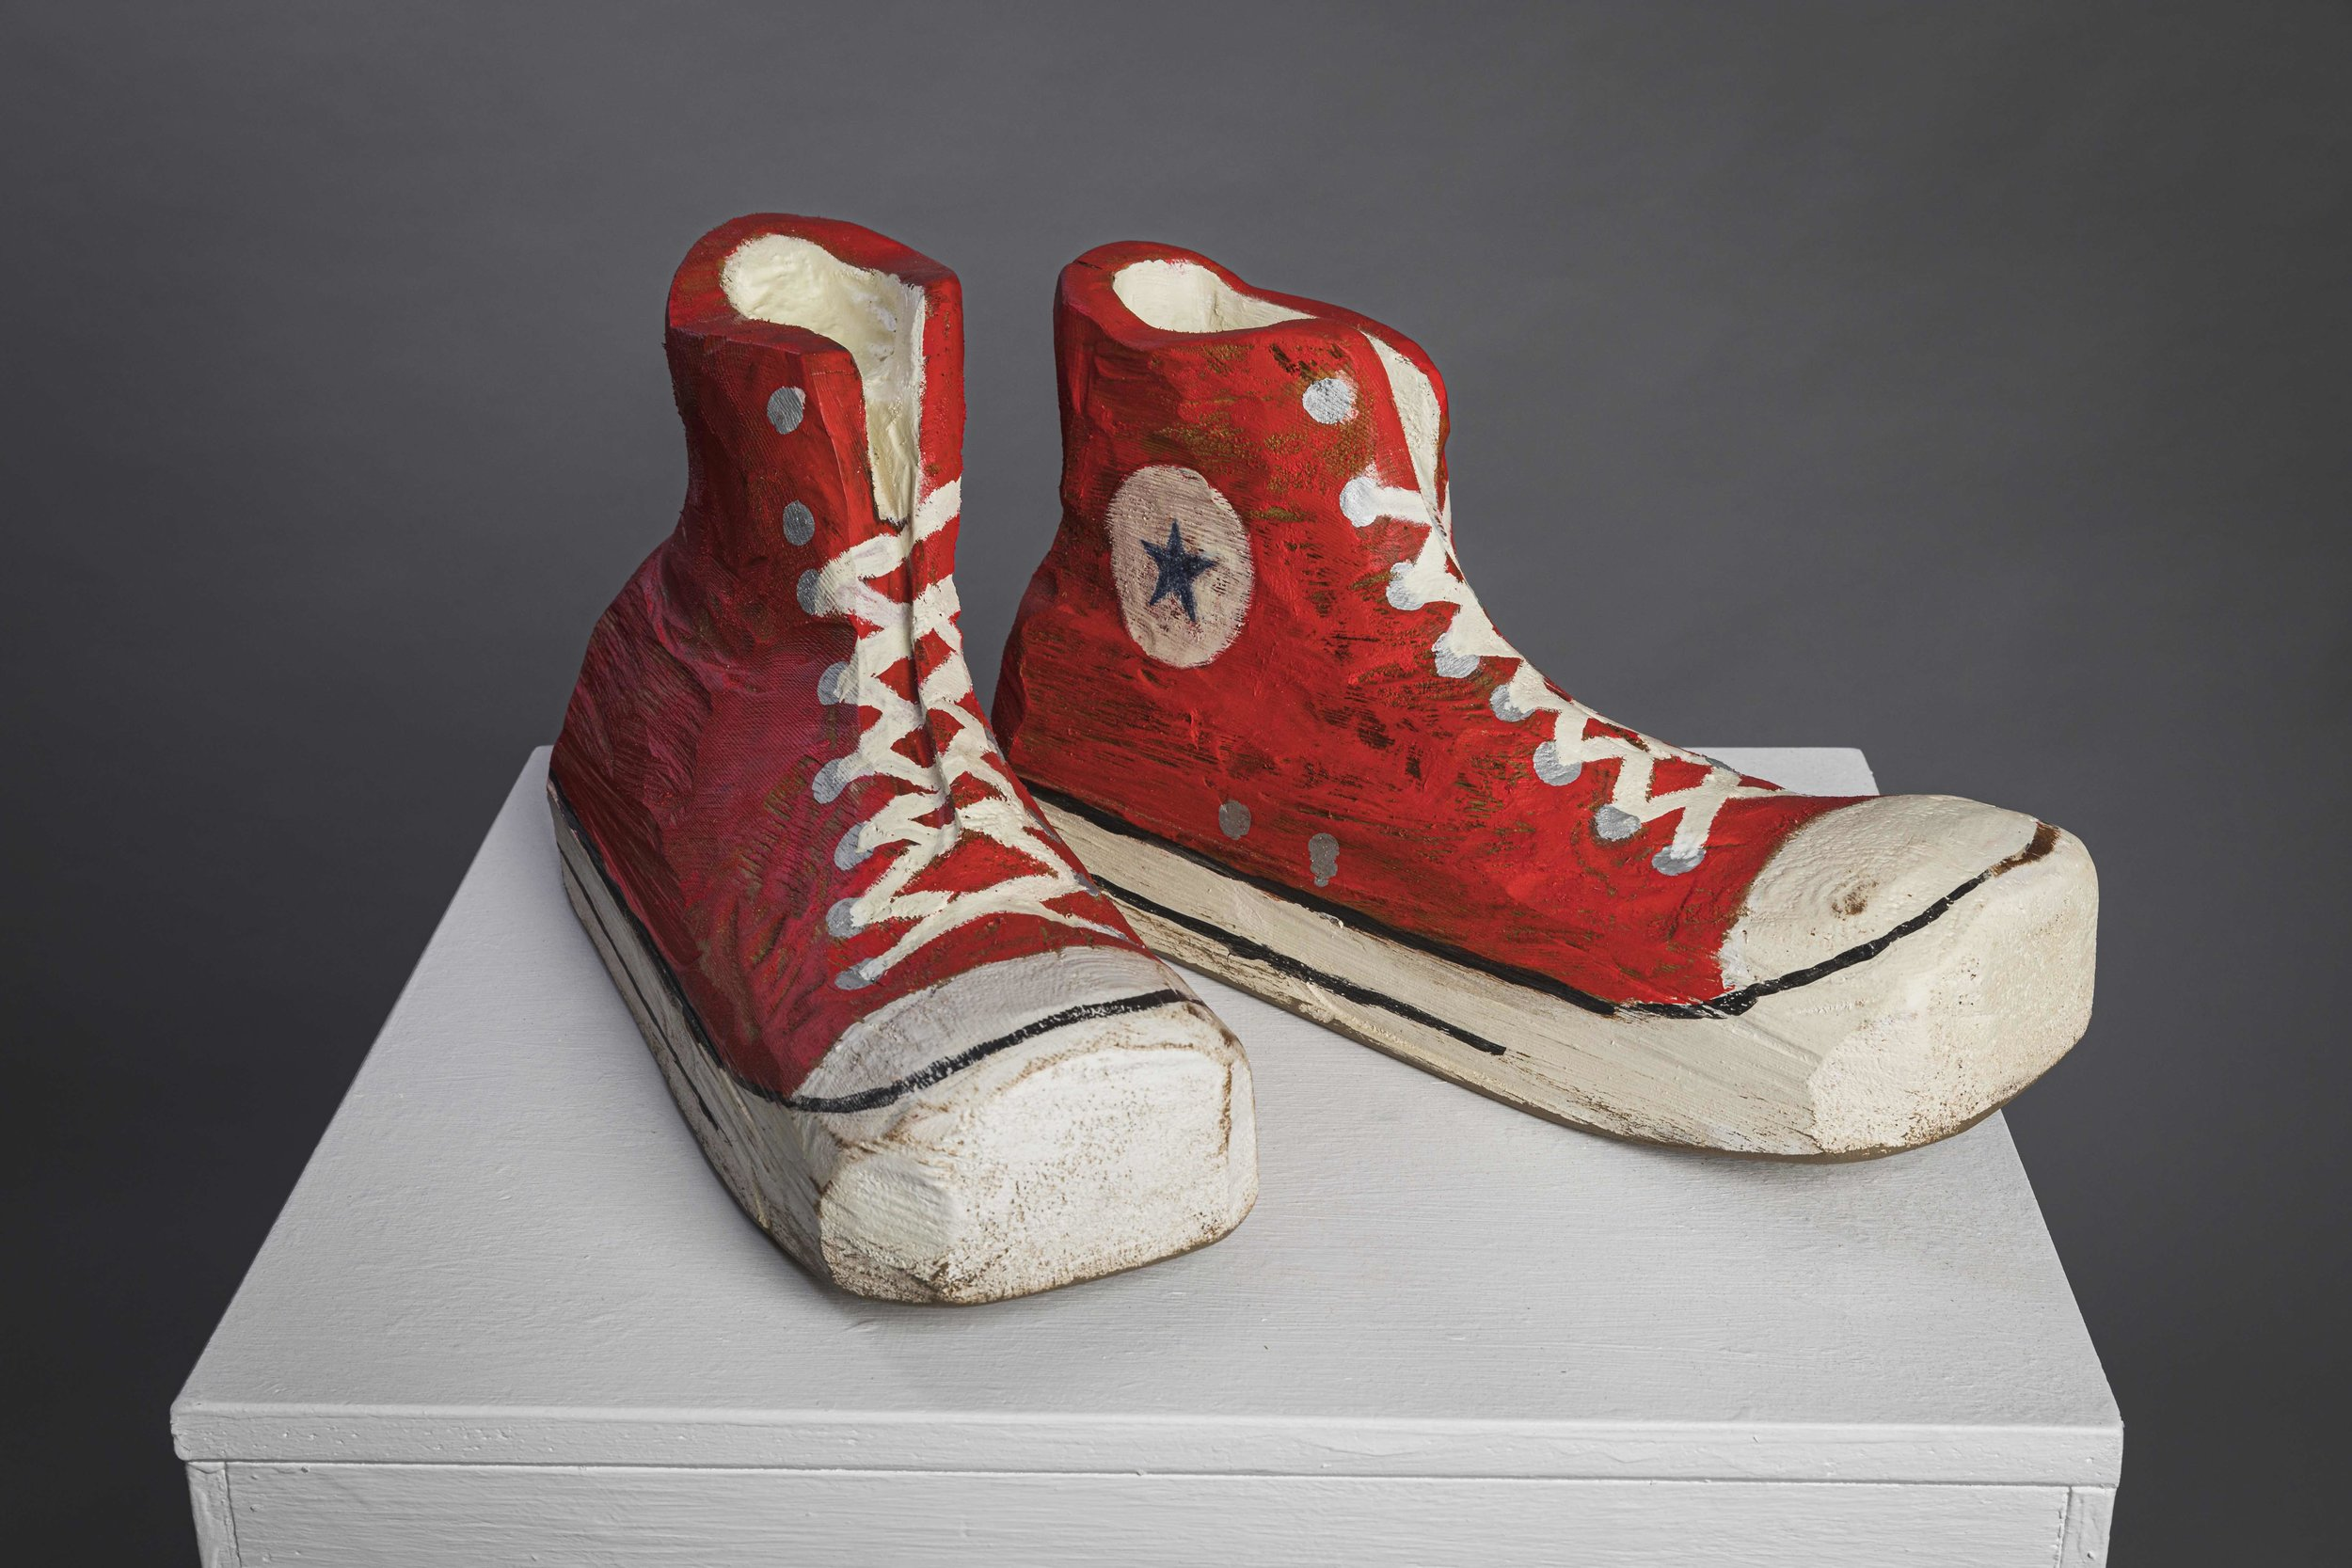 My Red All Stars